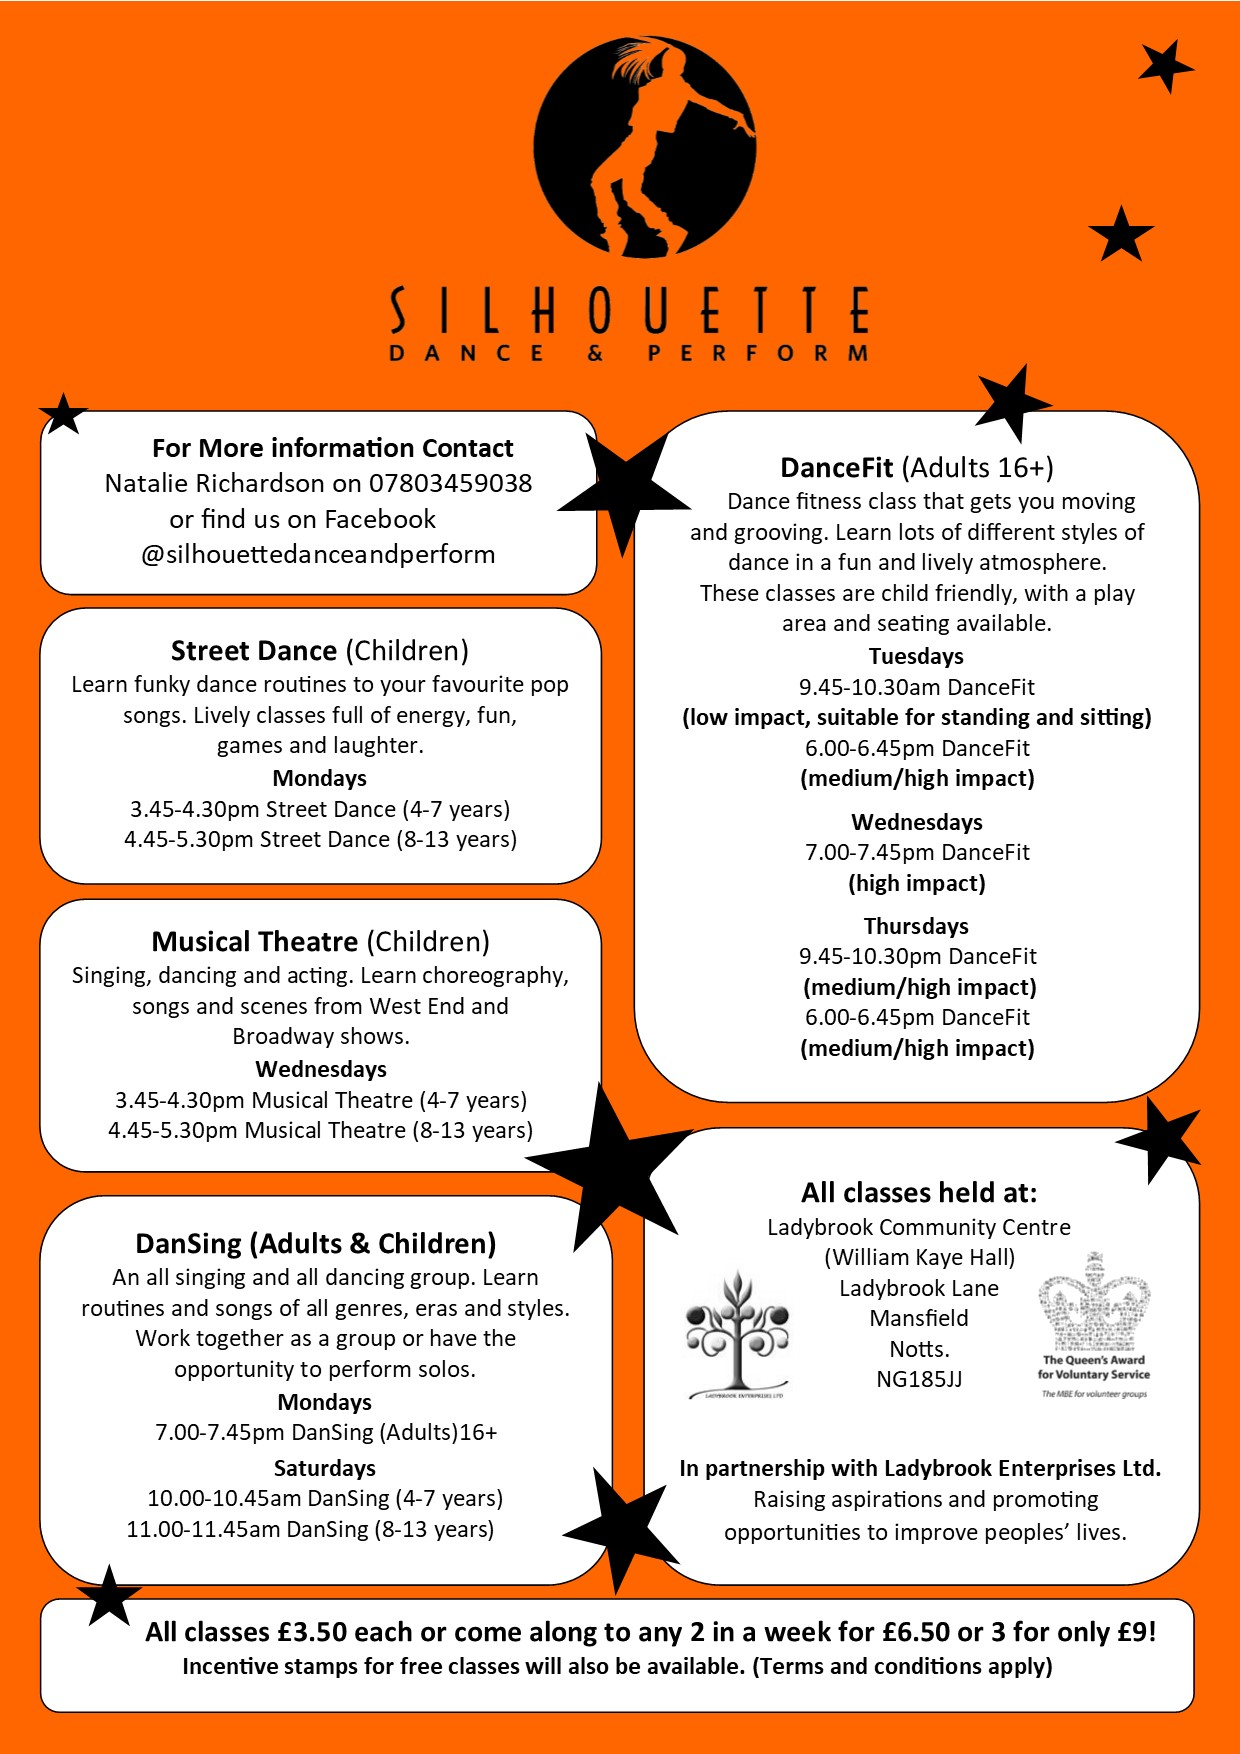 silhouette new classes information orange